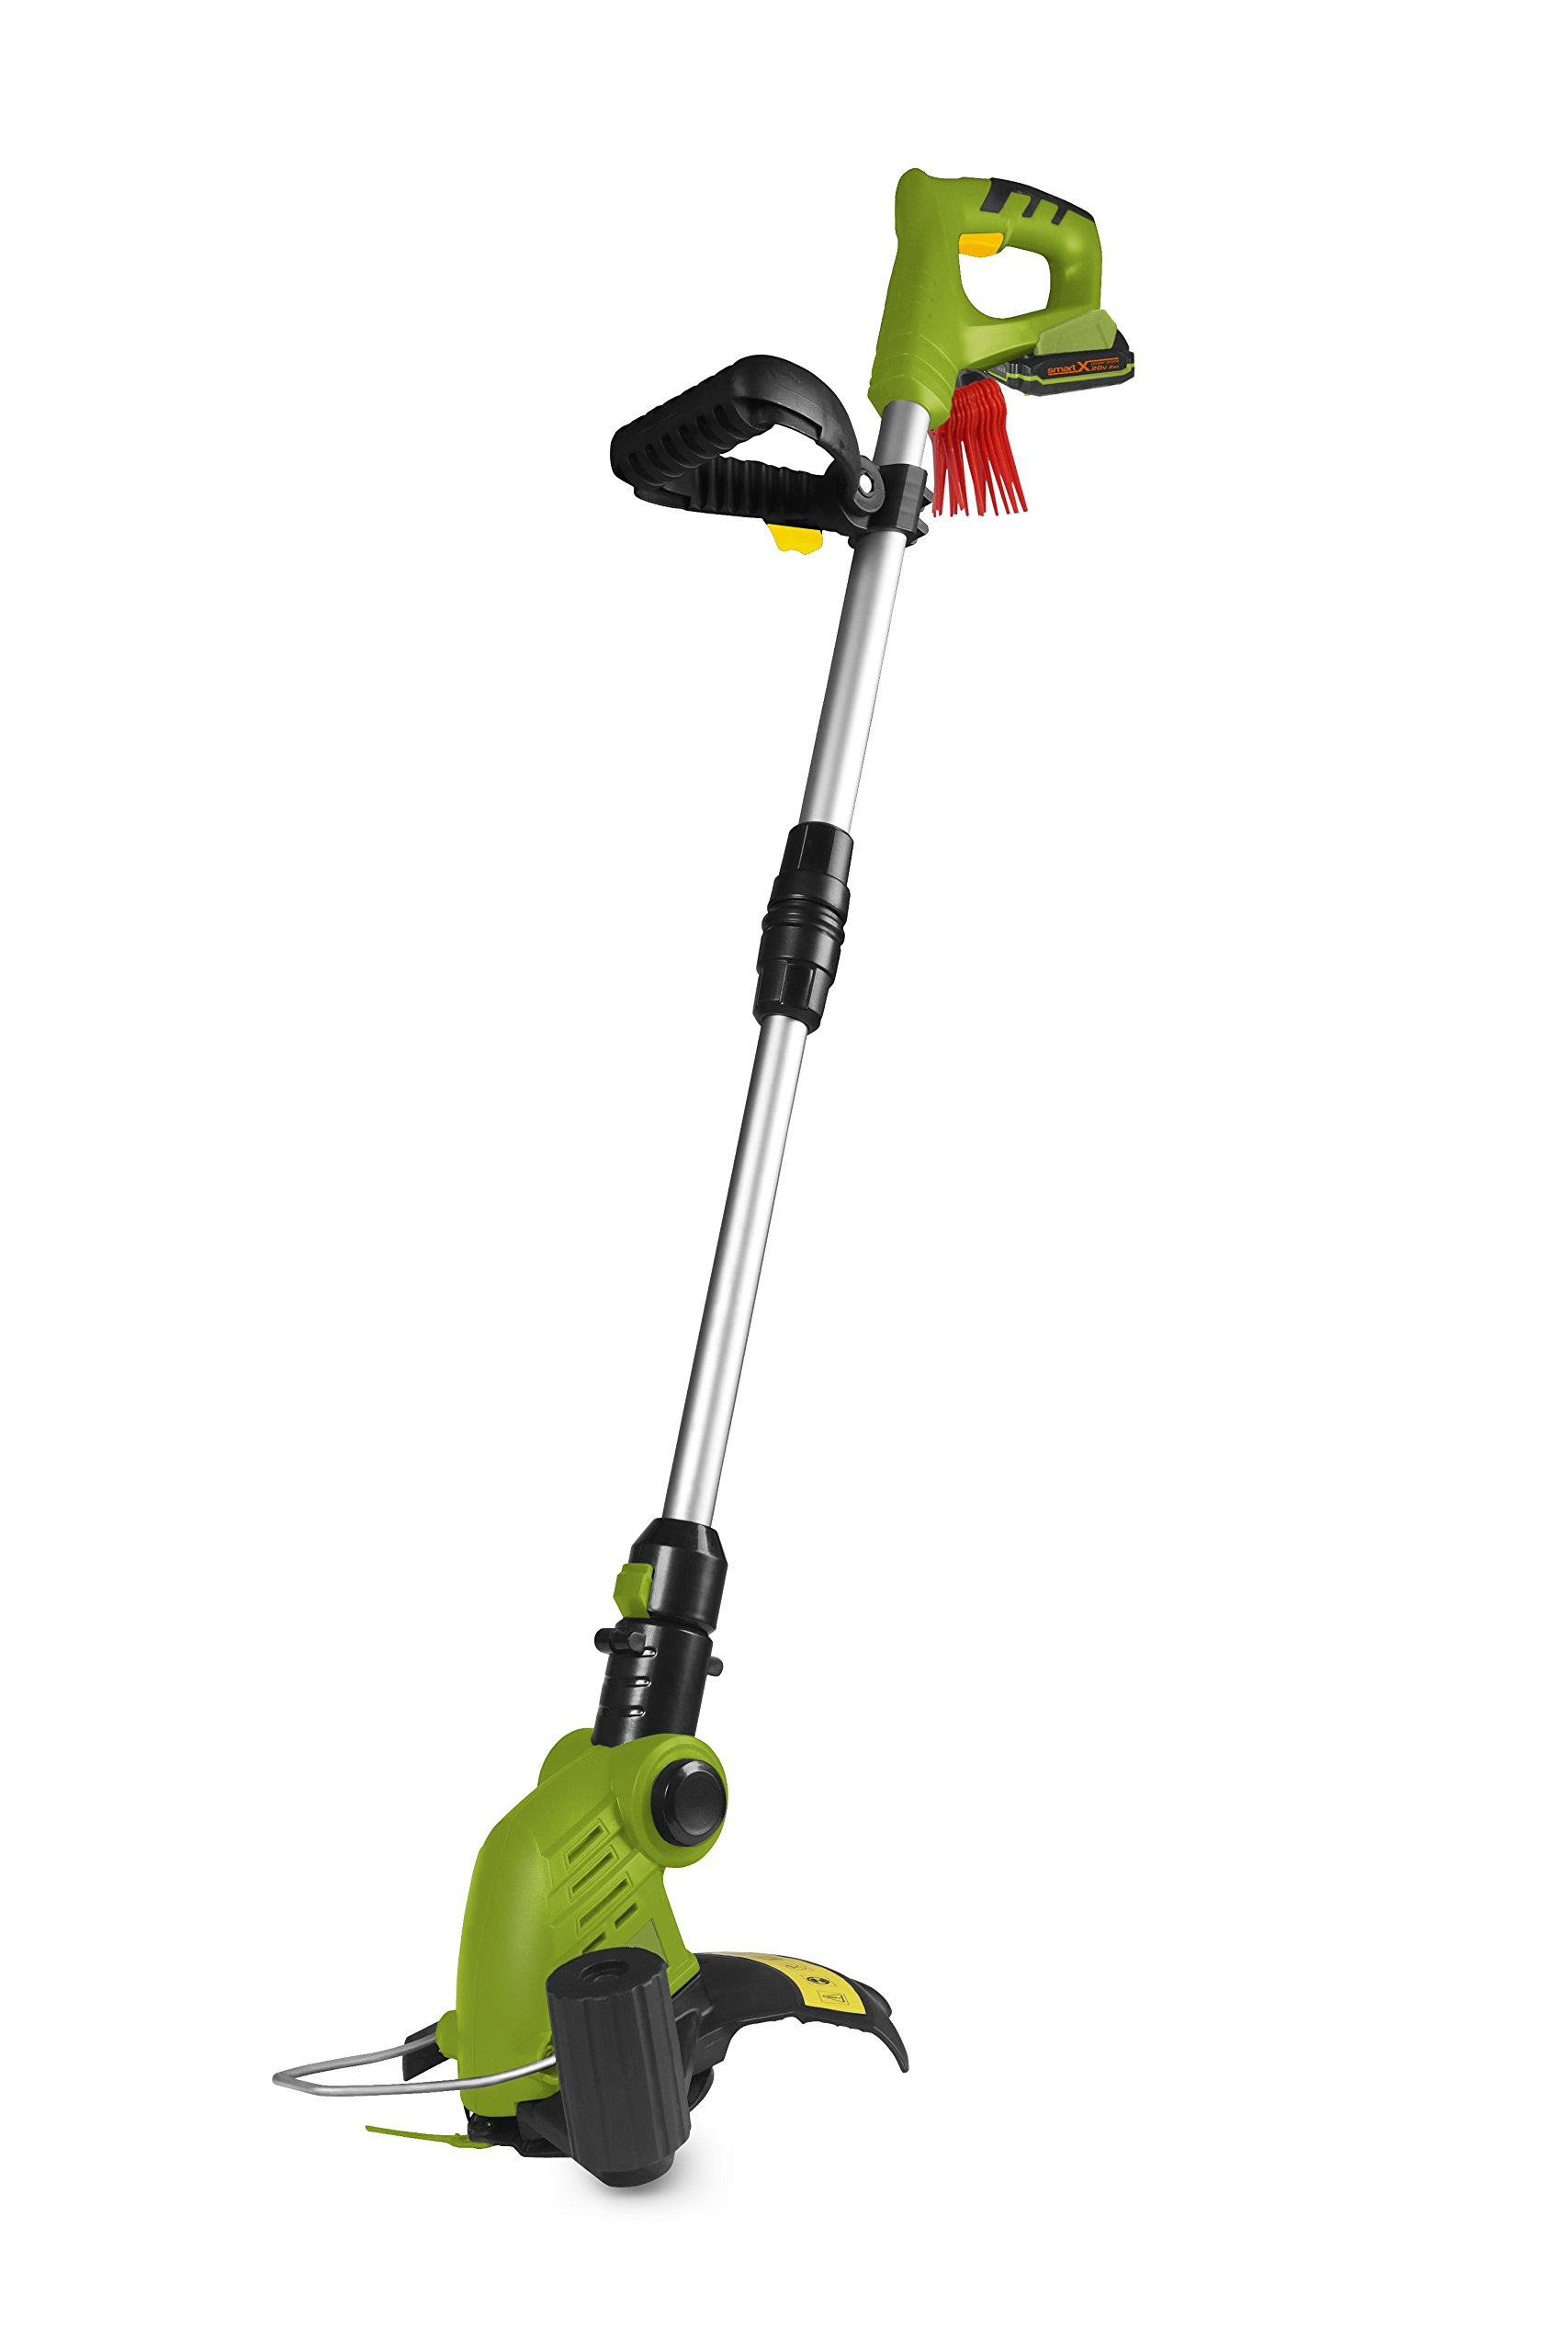 SmartEco 20V Lithium Ion 2 in 1 Cordless Telescoping Blade Grass Trimmer Edger with 1x 2Ah Battery & 1 Hour Fast Charger (12pcs of Replacement Blades Included)